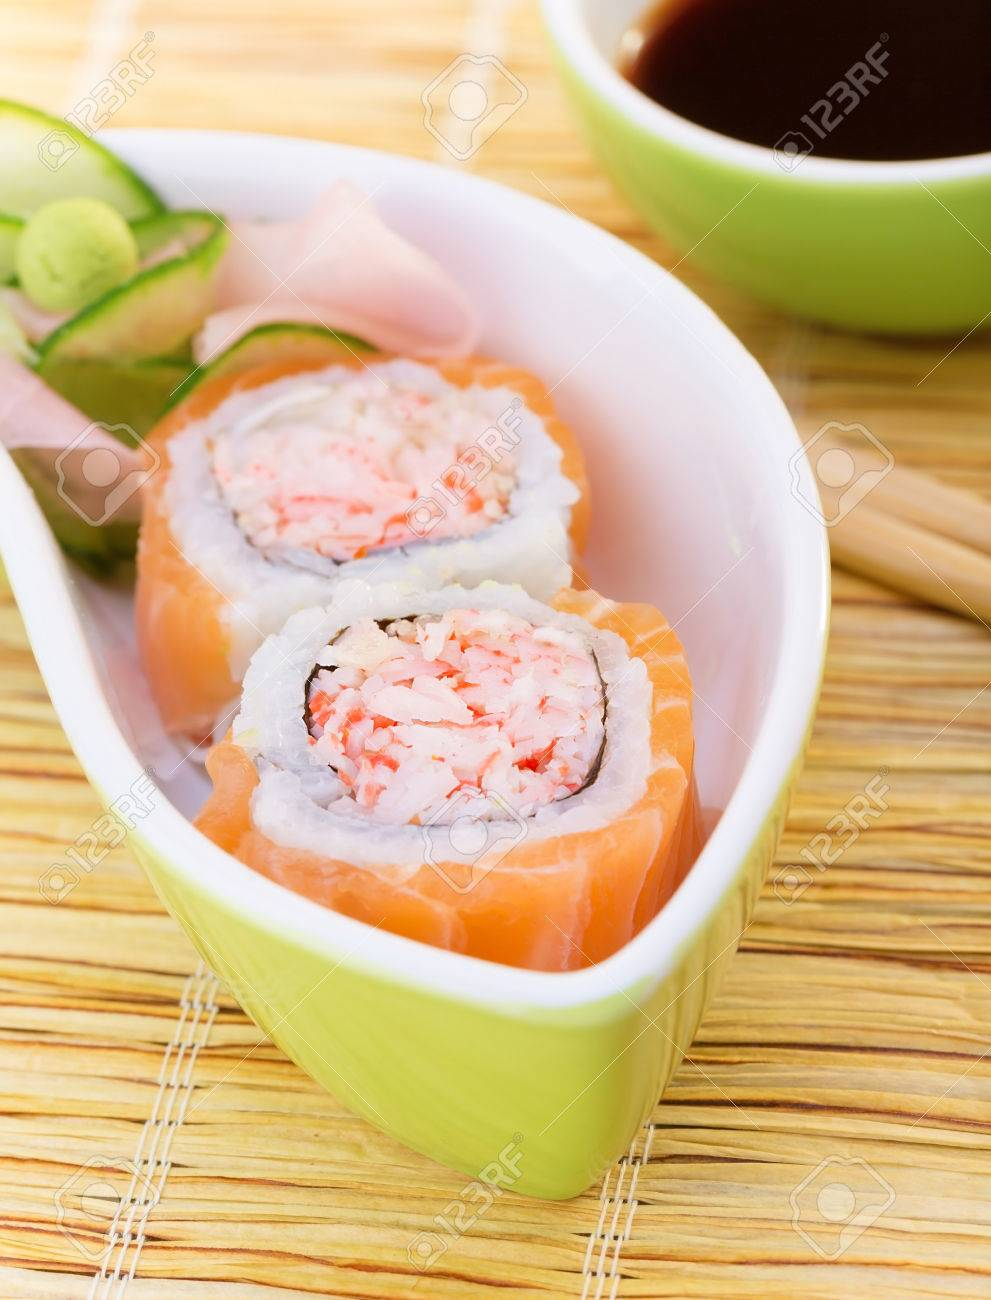 Delicious sushi served with chopsticks and soy sauce, tasty roll with crab meat and raw salmon, traditional asian food, healthy eating concept Stock Photo - 22631428